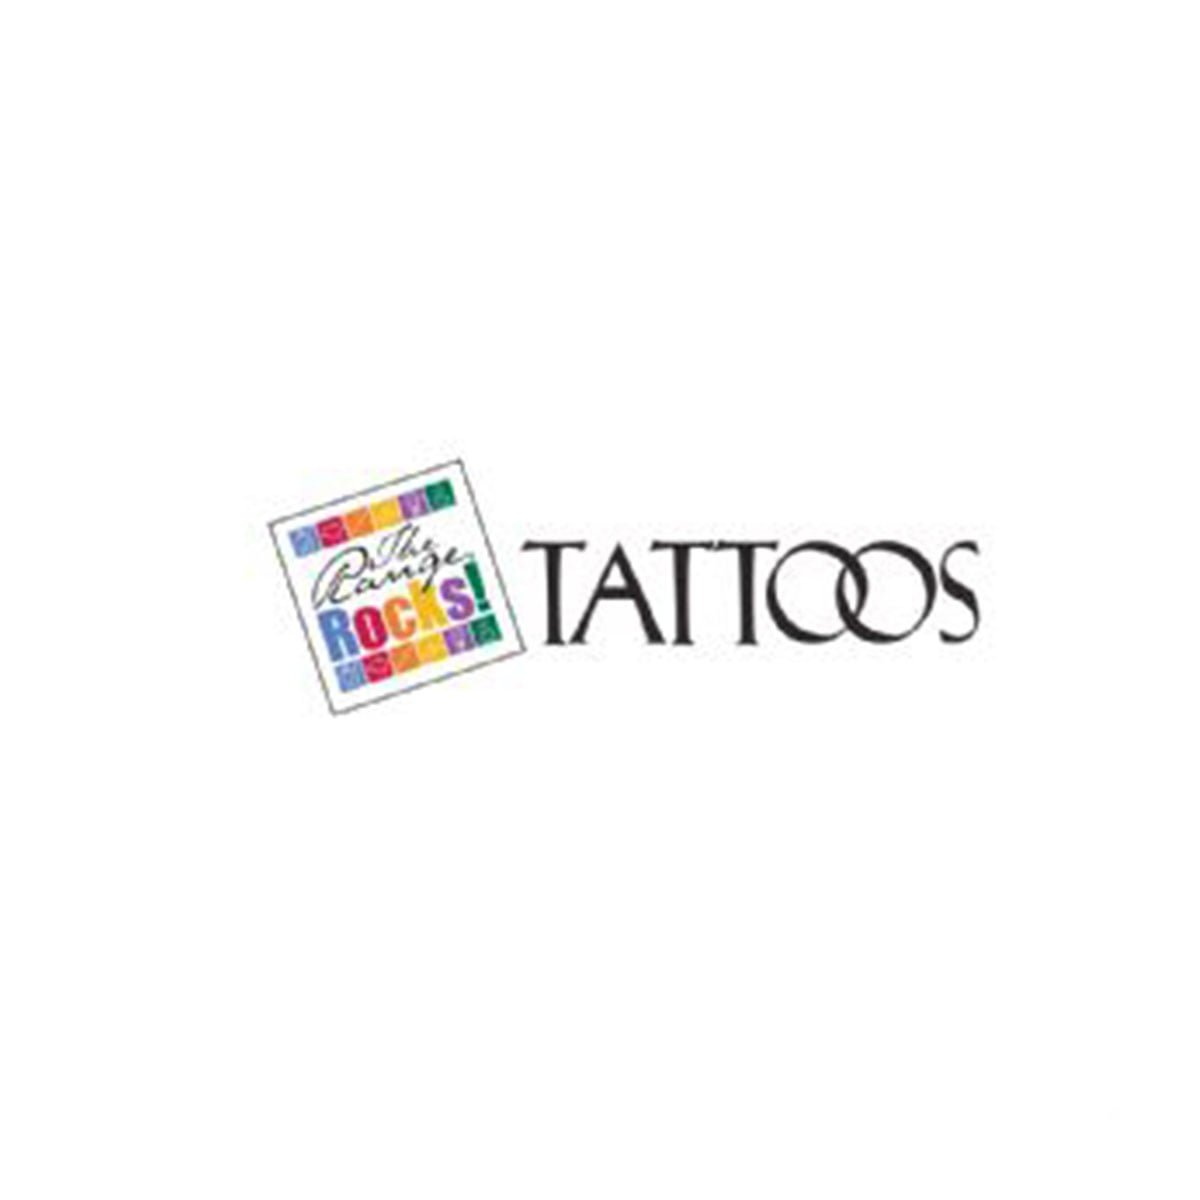 Tattoos-Available in any PMS colour.